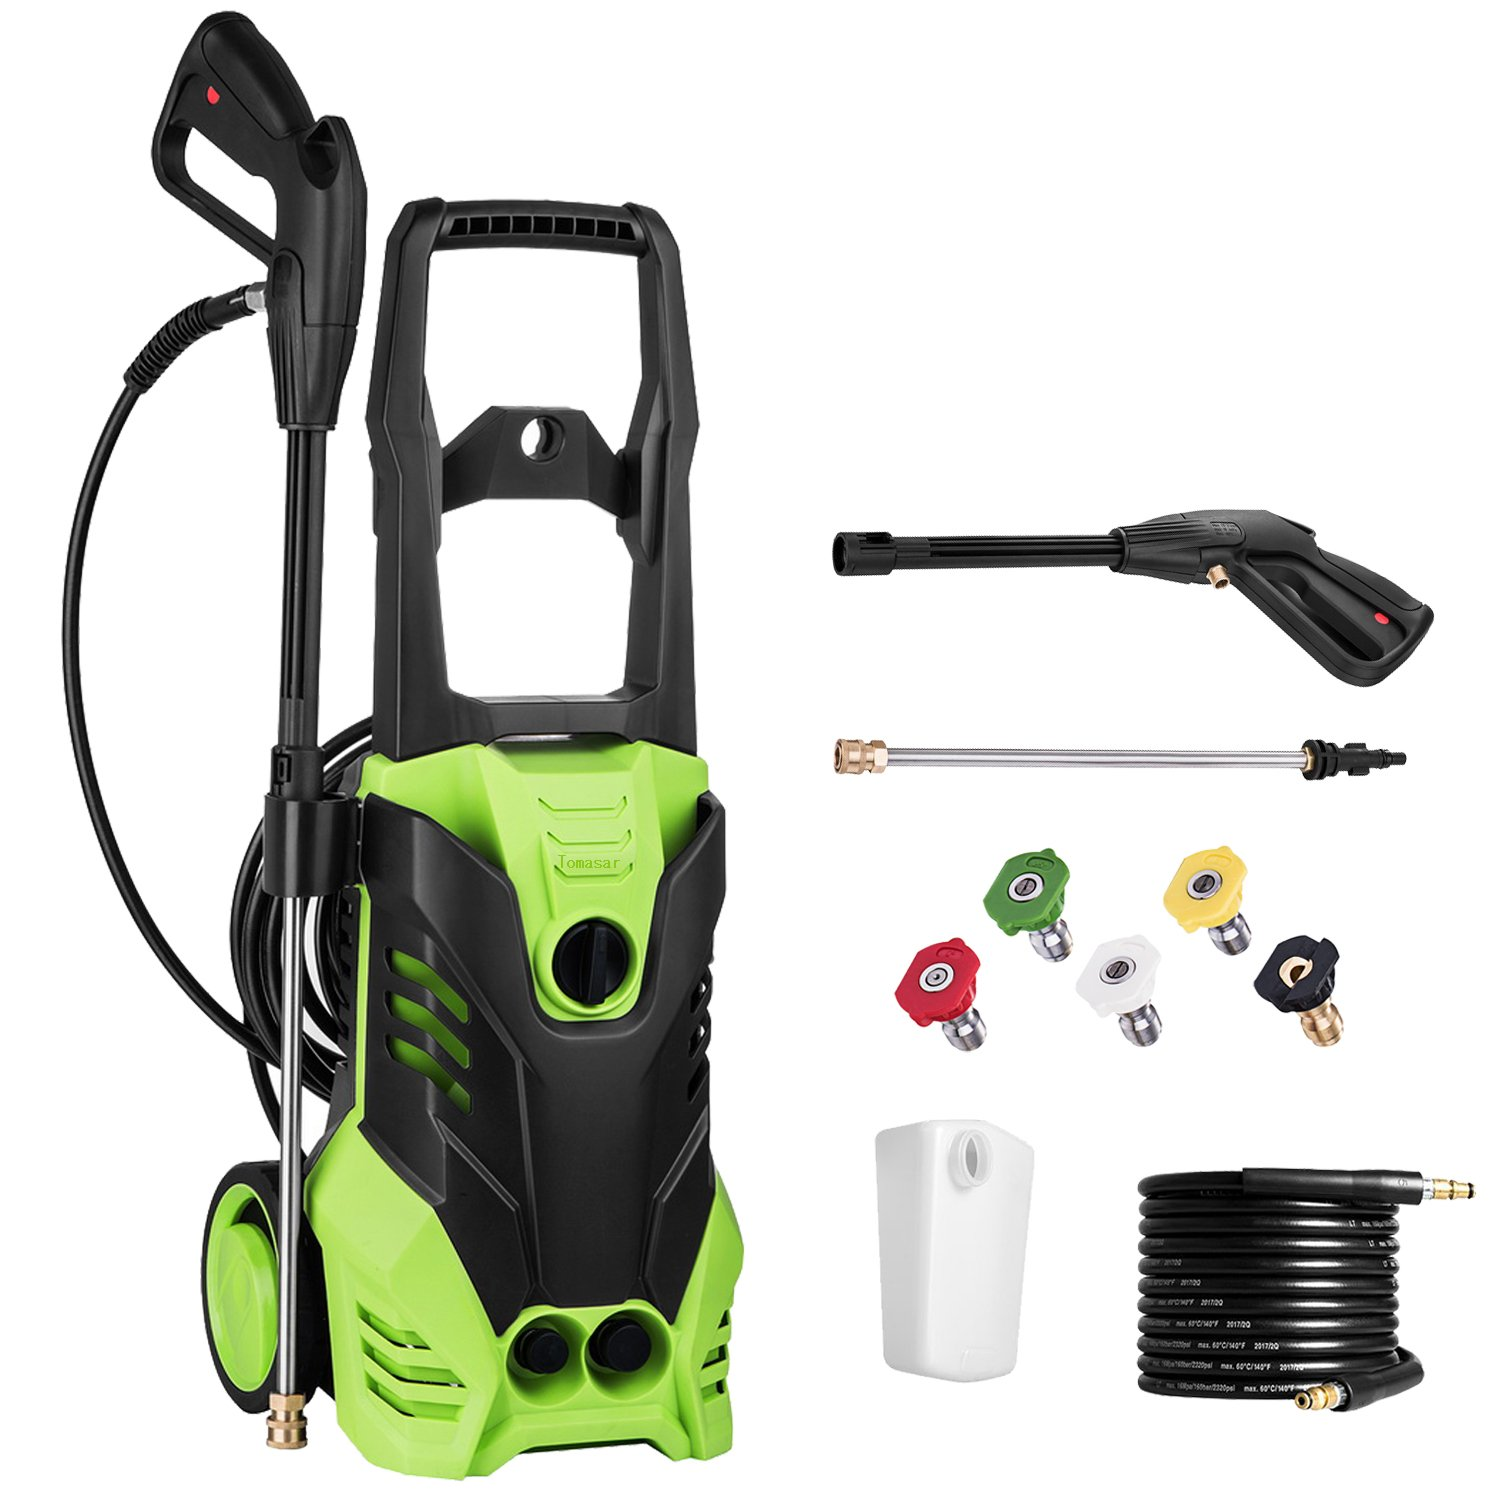 BPX4000 3000 PSI 1.76 GPM 14.5-Amp Electric Pressure Washer w/ Power Hose Nozzle Gun And 5 Quick-Connect Spray Tips by Binxin